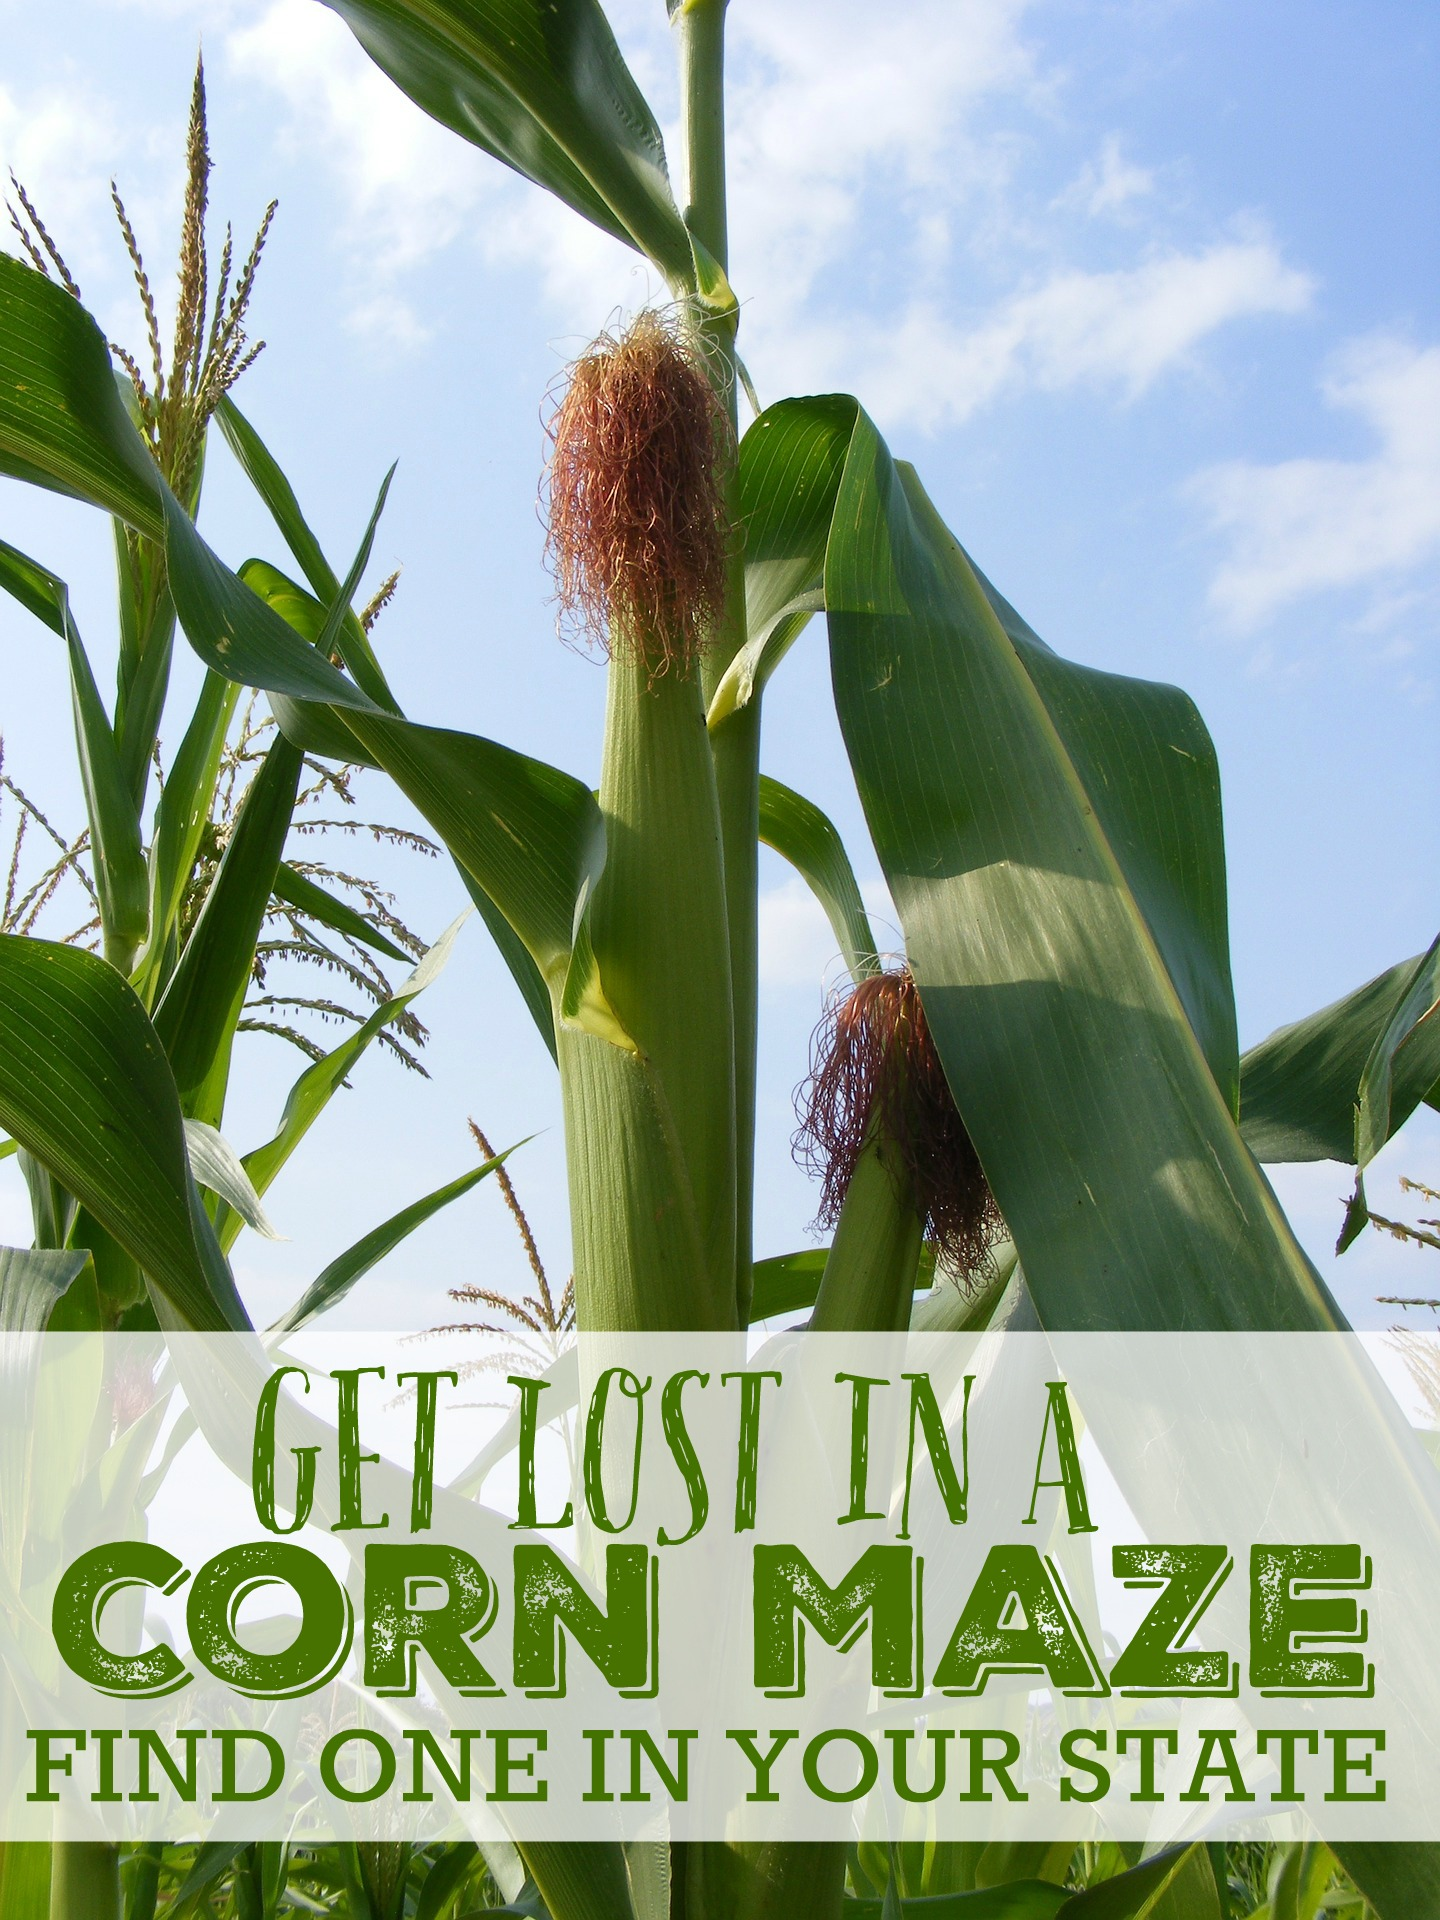 Get lost in a corn maze find one in your state